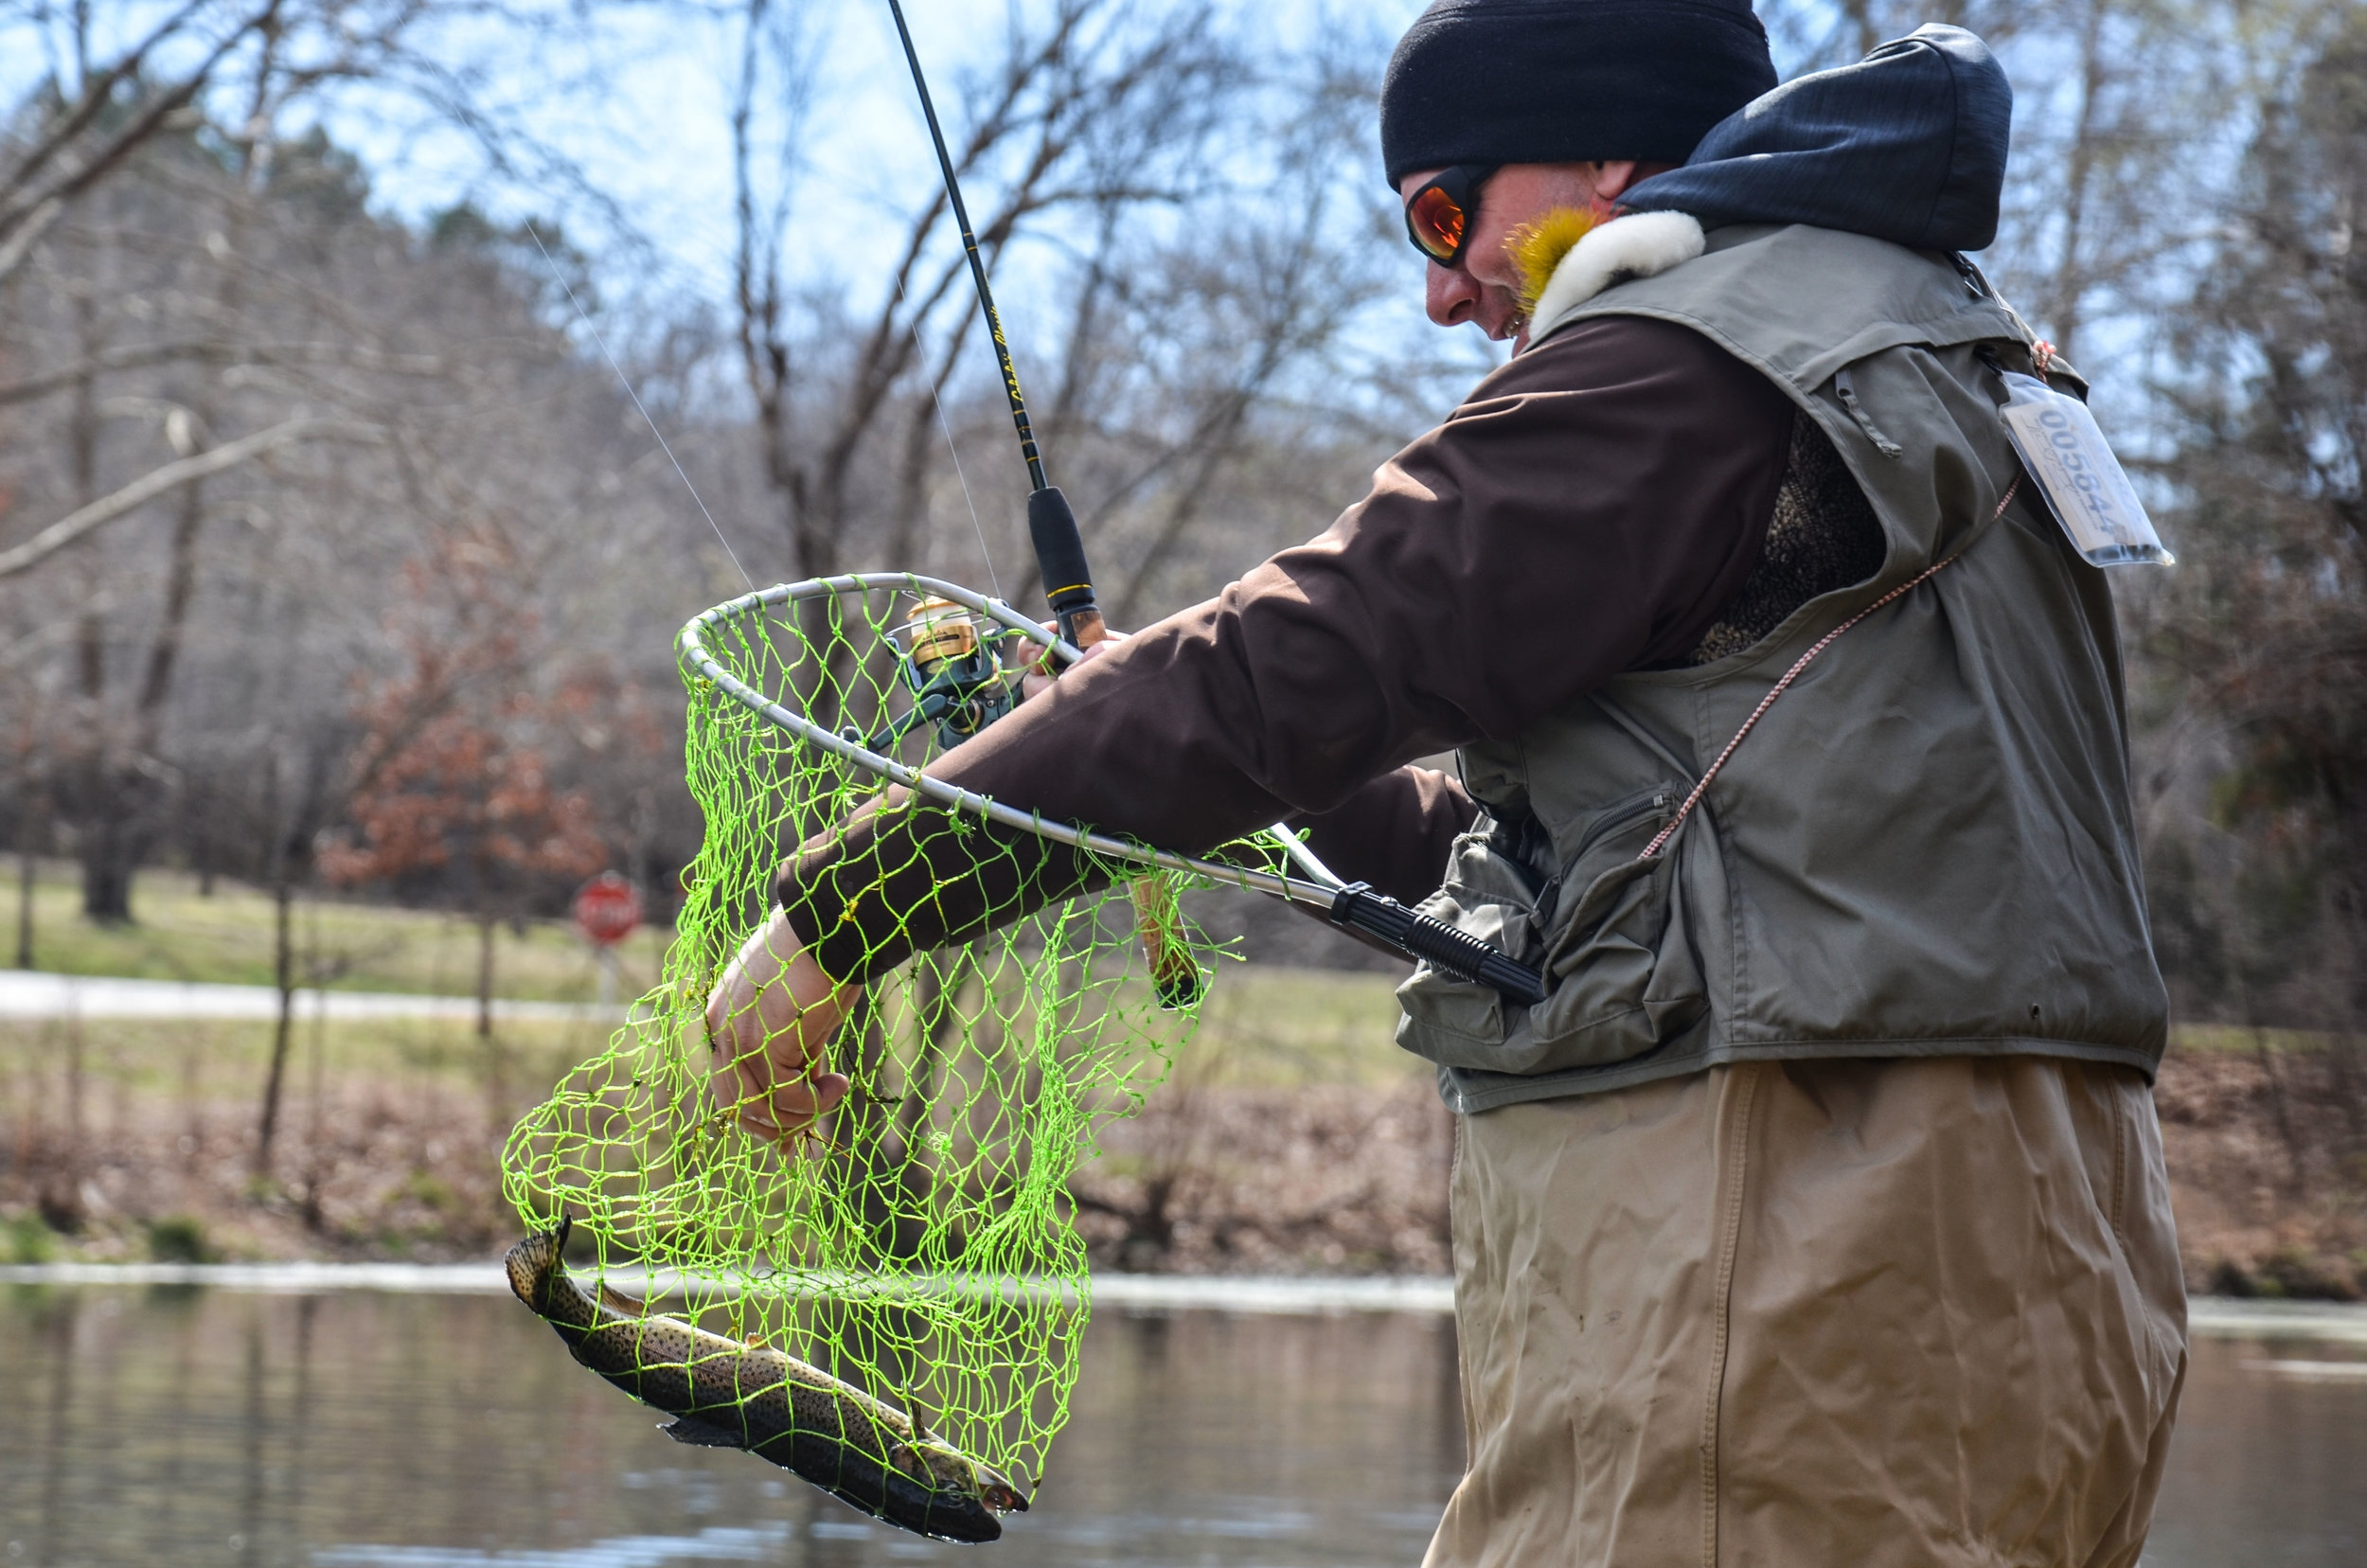 Fisherman Mike Moulin catches a trout at Bennett Spring State Park in Lebanon, Missouri, on Sunday, March 12, 2017. He was one of the thousands of fishermen who visited Bennett Spring State Park during trout season.